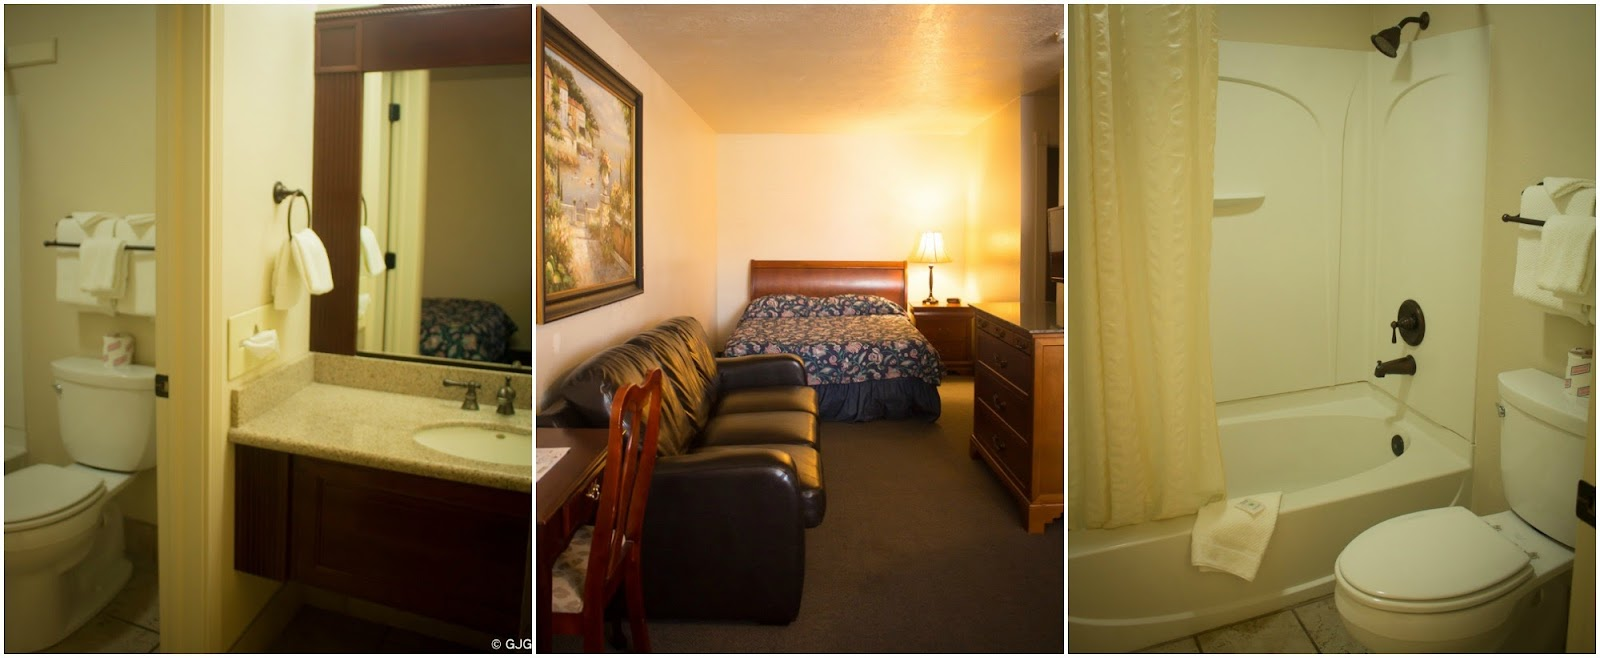 Chalet Motel St. George Utah motel review